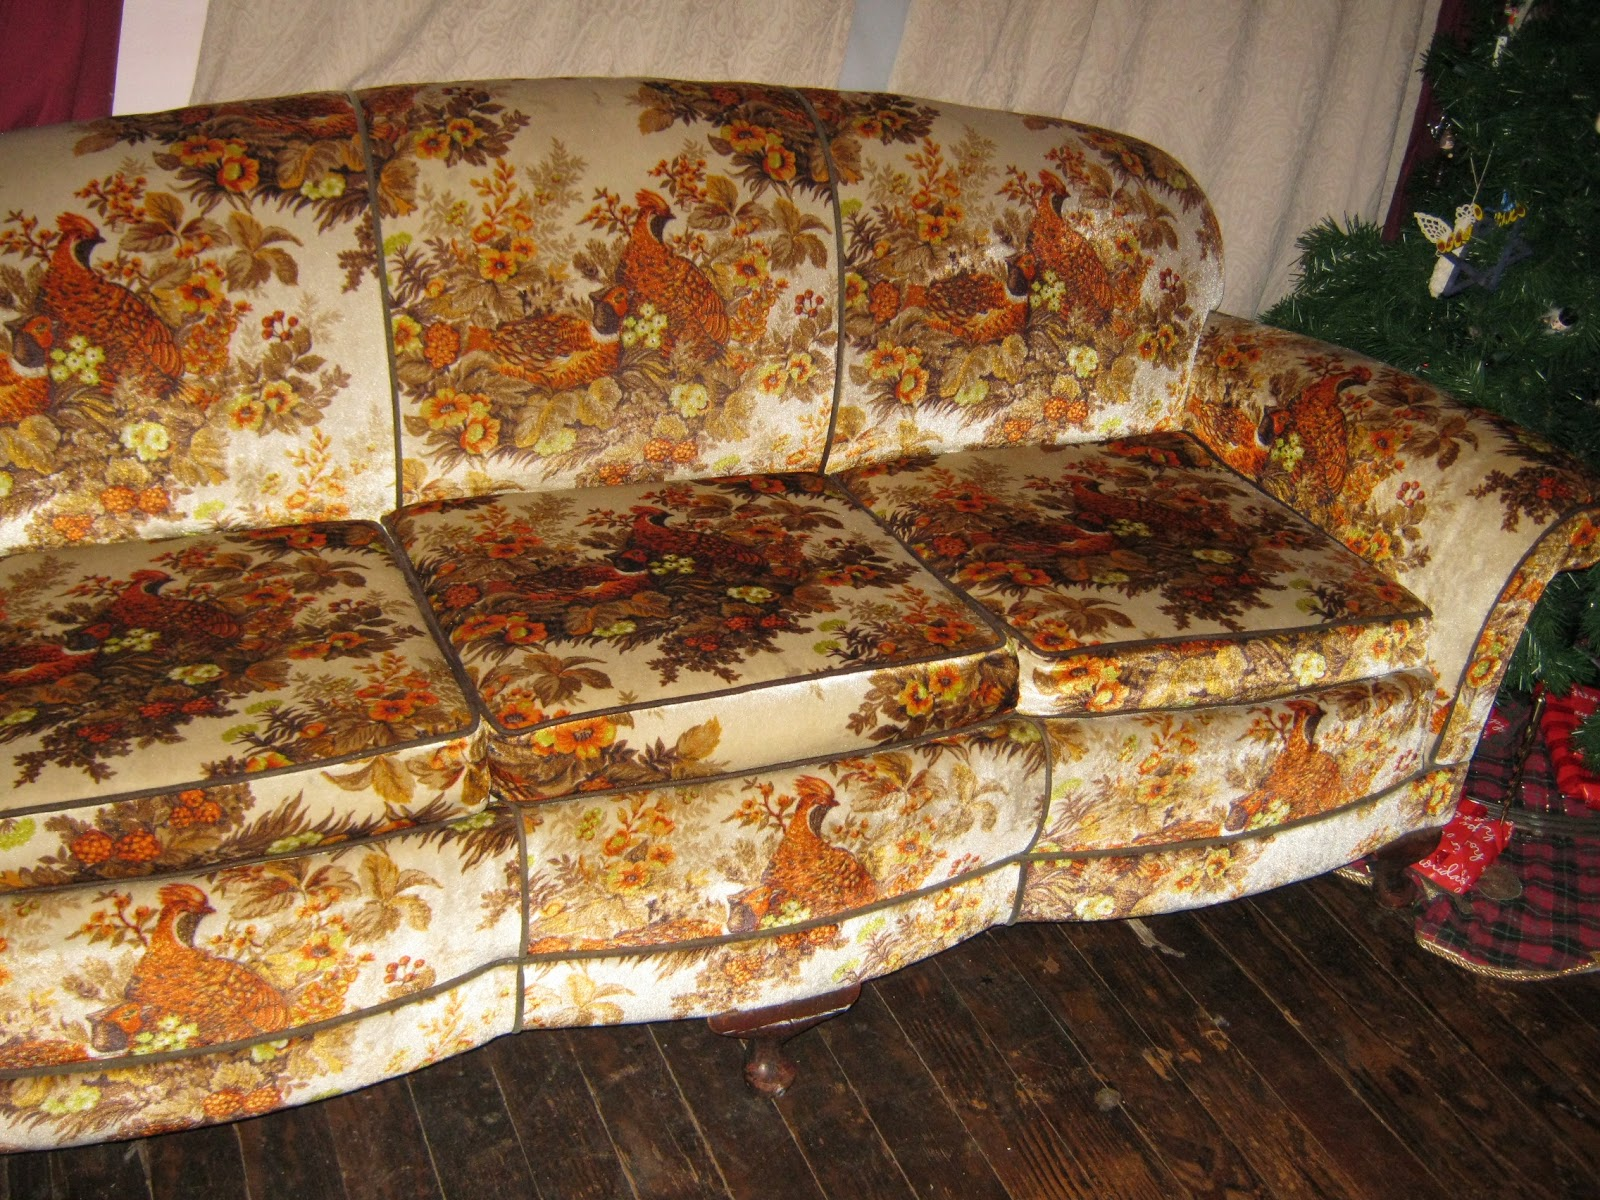 Literally The Ugliest Couch Ever Created By Mankind Pics